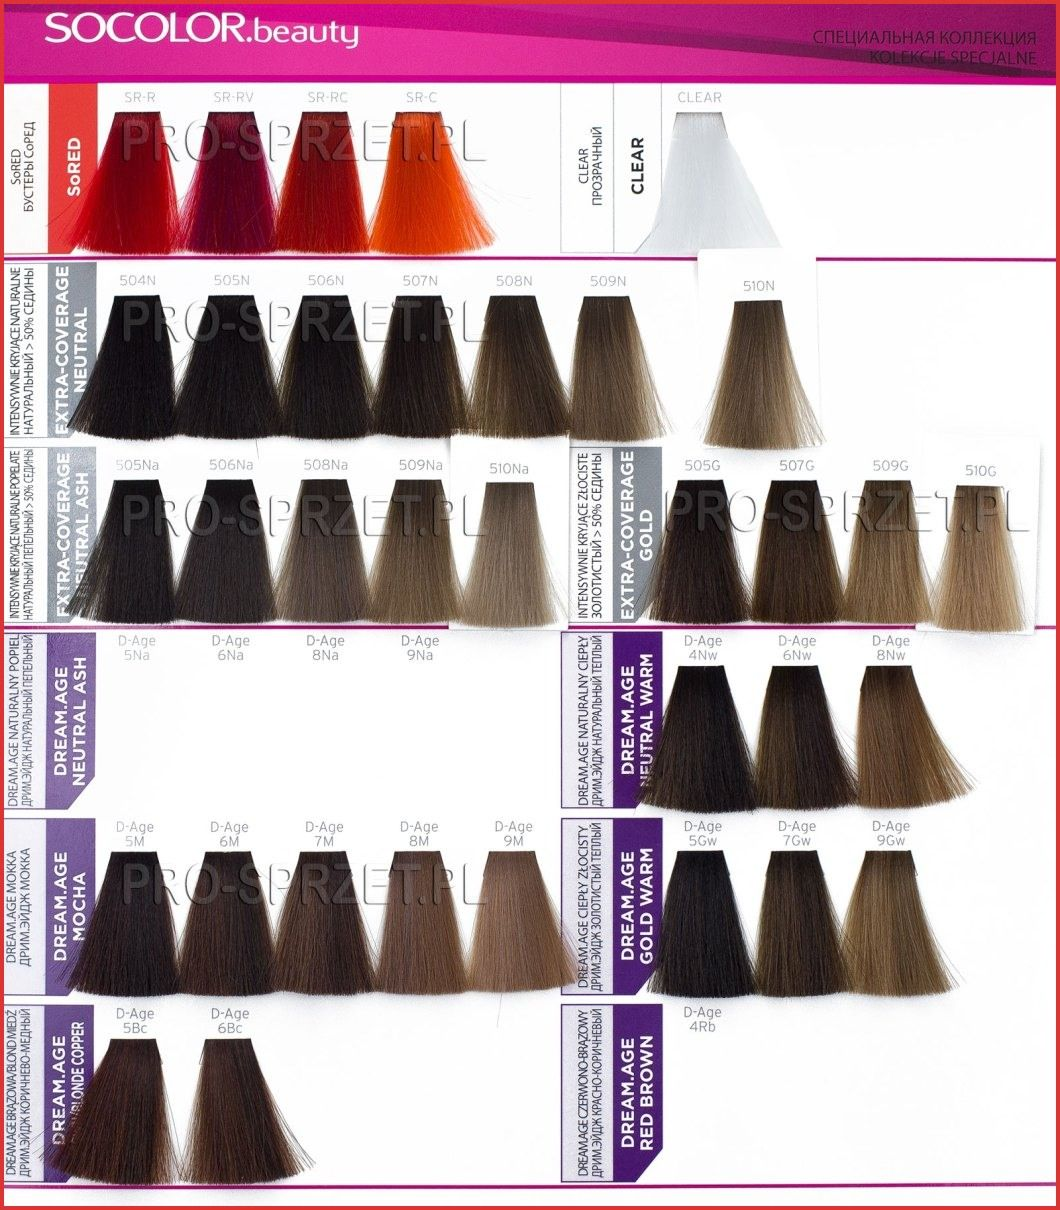 Matrix Socolor Chart 123457 Matrix Hair Socolor Color Chart Of Matrix Socolor Chart 123457 Mat Hair Color Swatches Matrix Hair Color Chart Matrix Socolor Chart